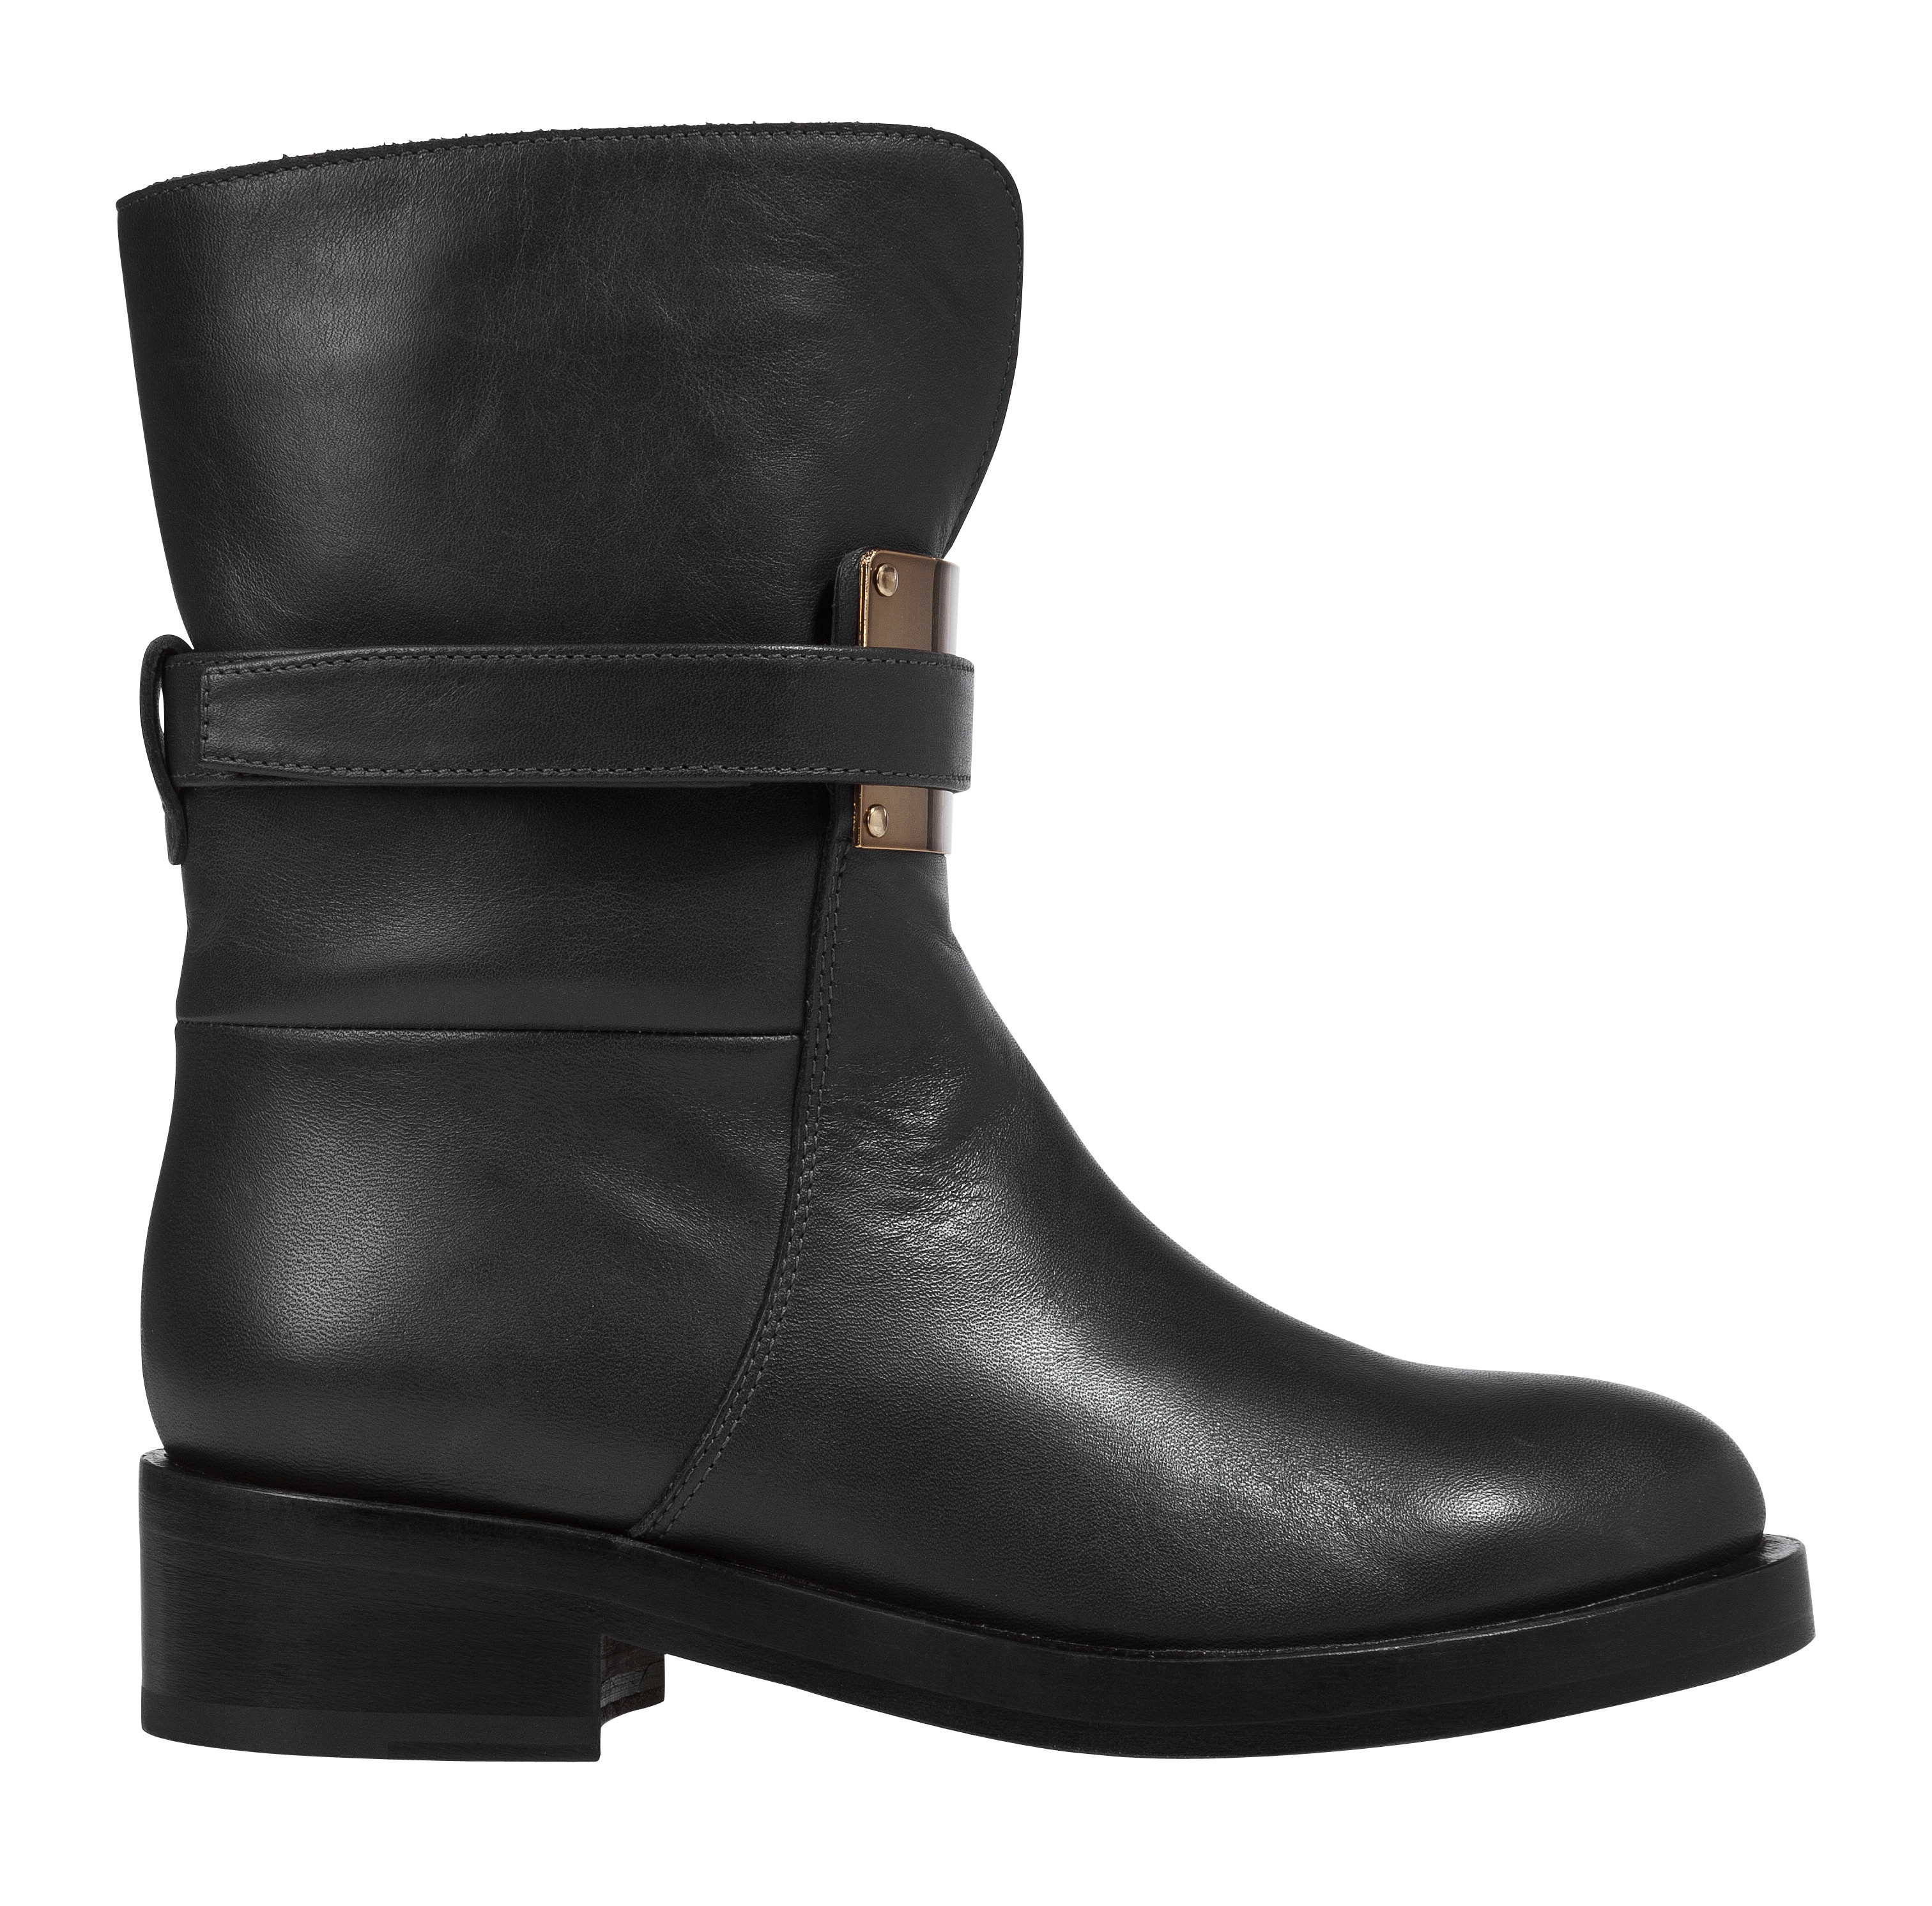 buy cheap pre order lowest price Dorothee Schumacher classic double-buckle boots clearance comfortable Pc4hDWl